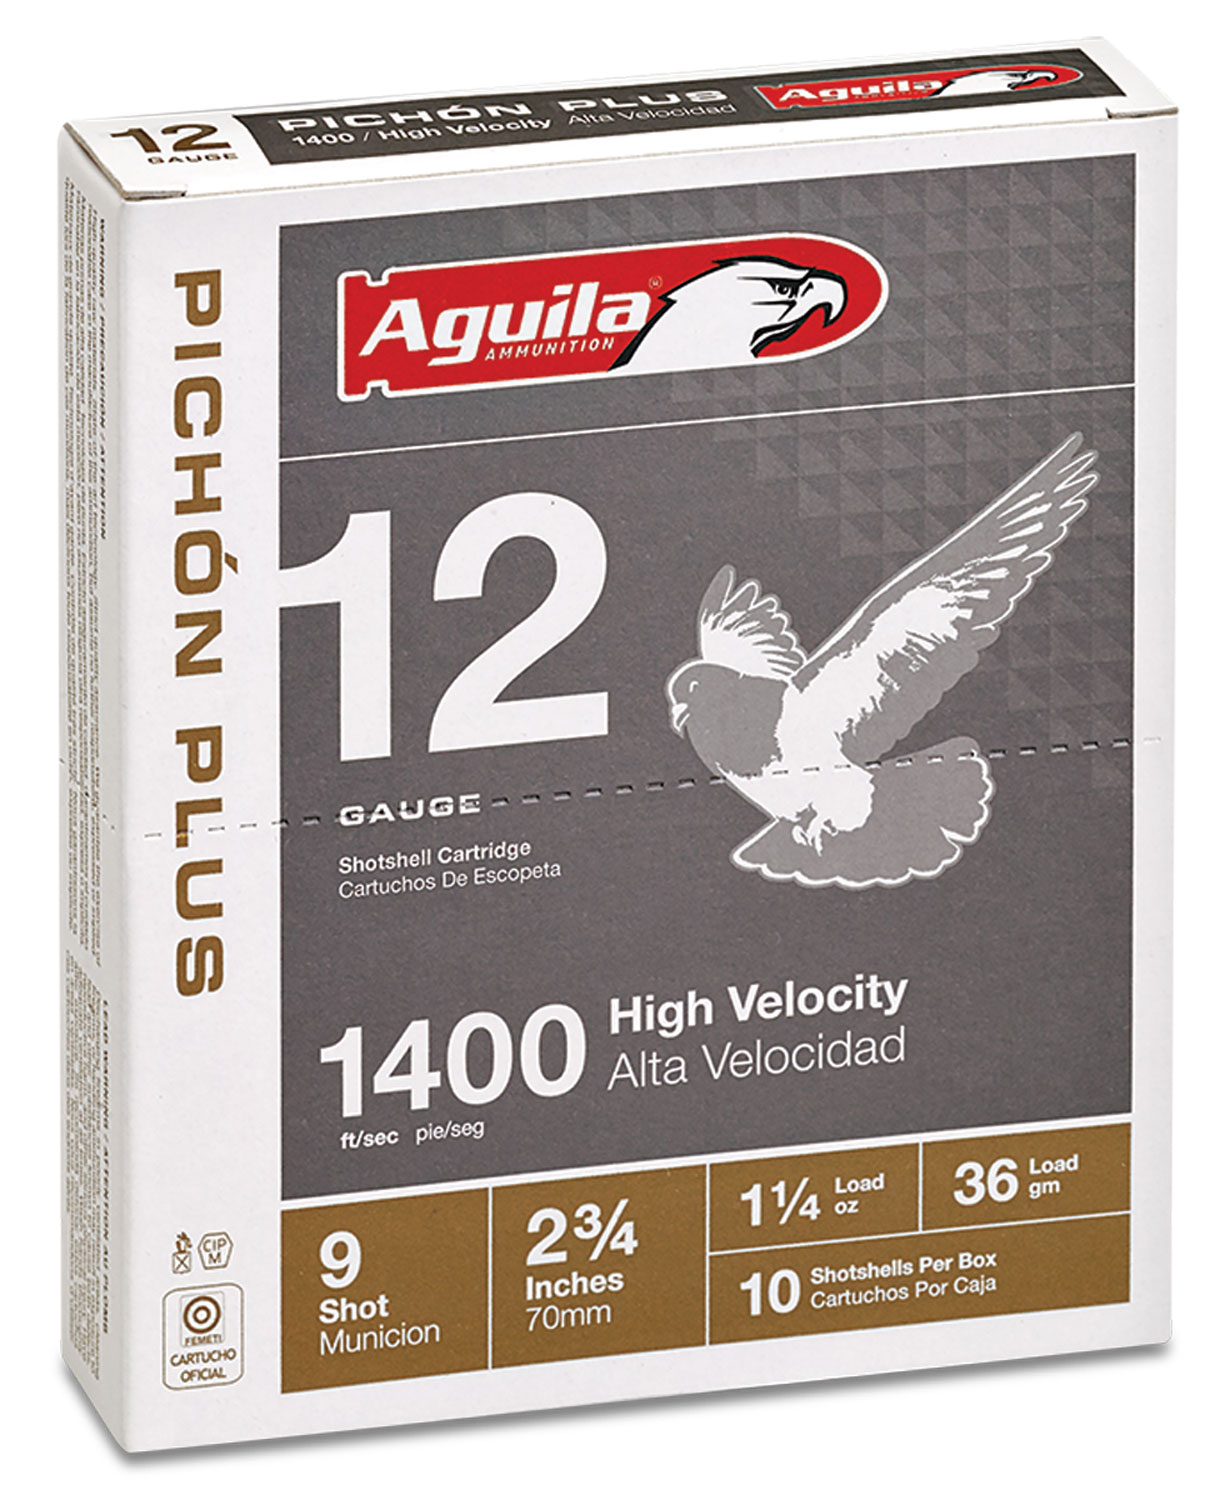 Aguila 1CHB1297 Competition   12 Gauge 2.75